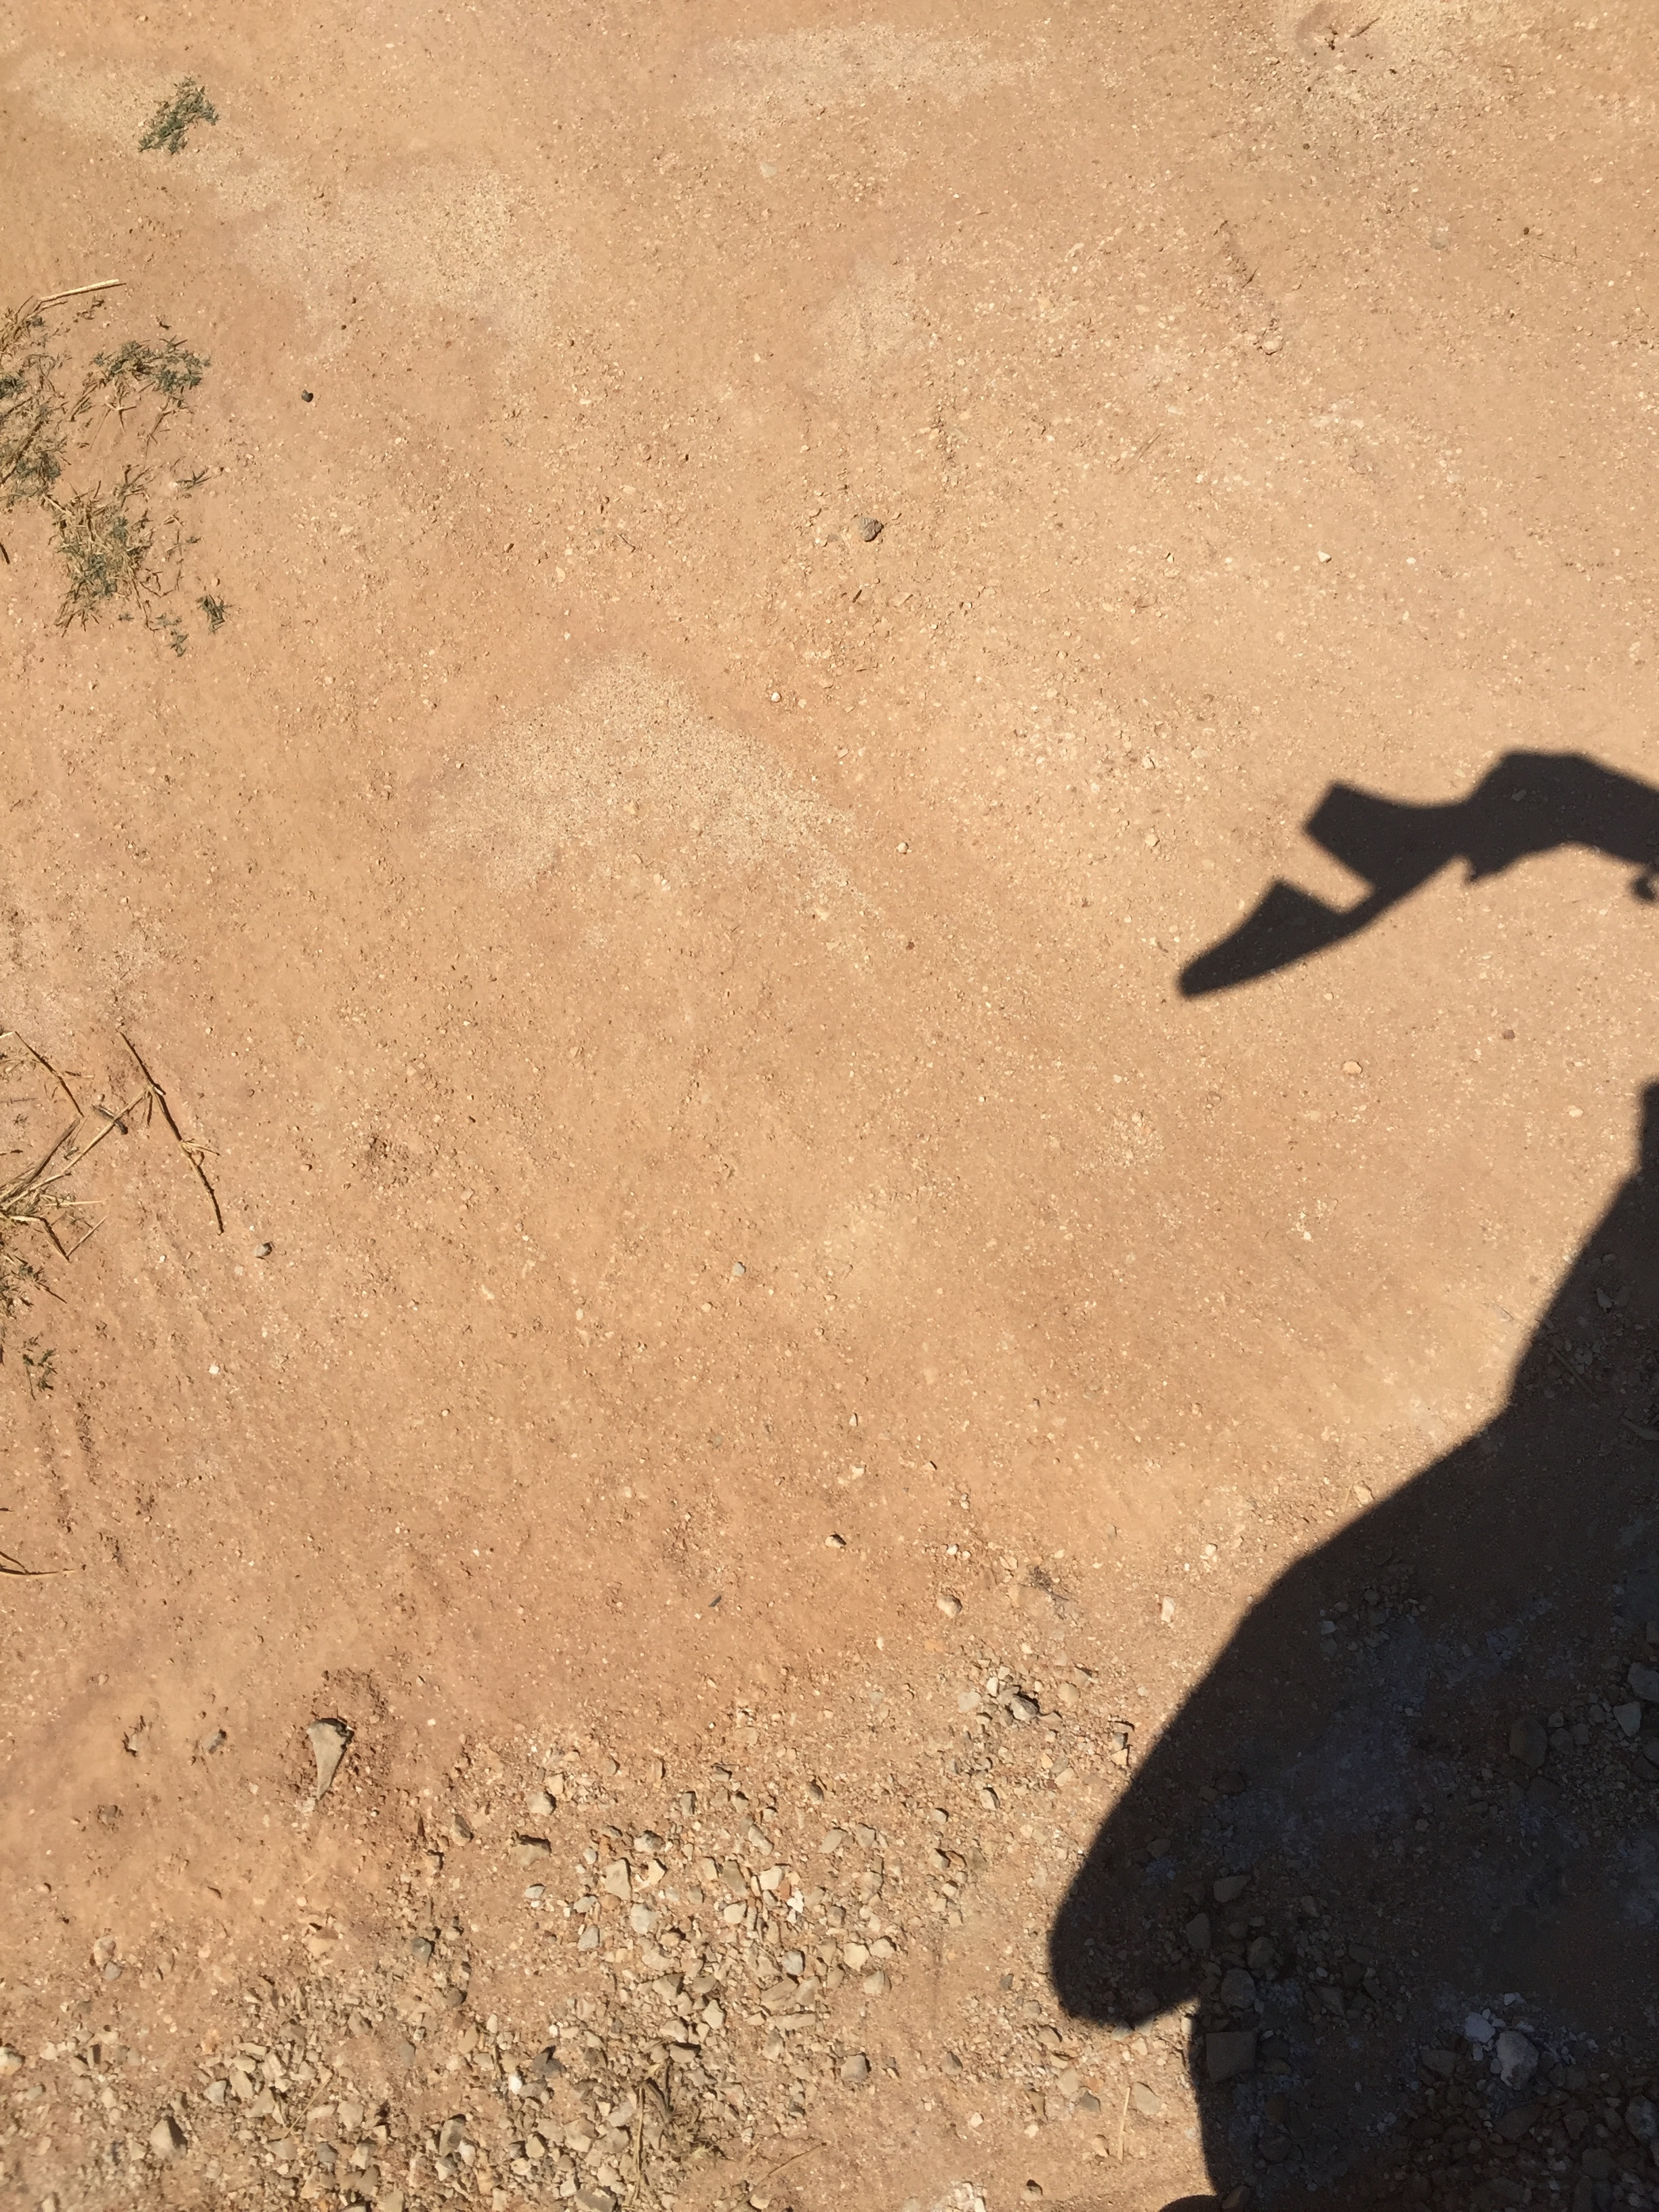 shadow play with the mule in white